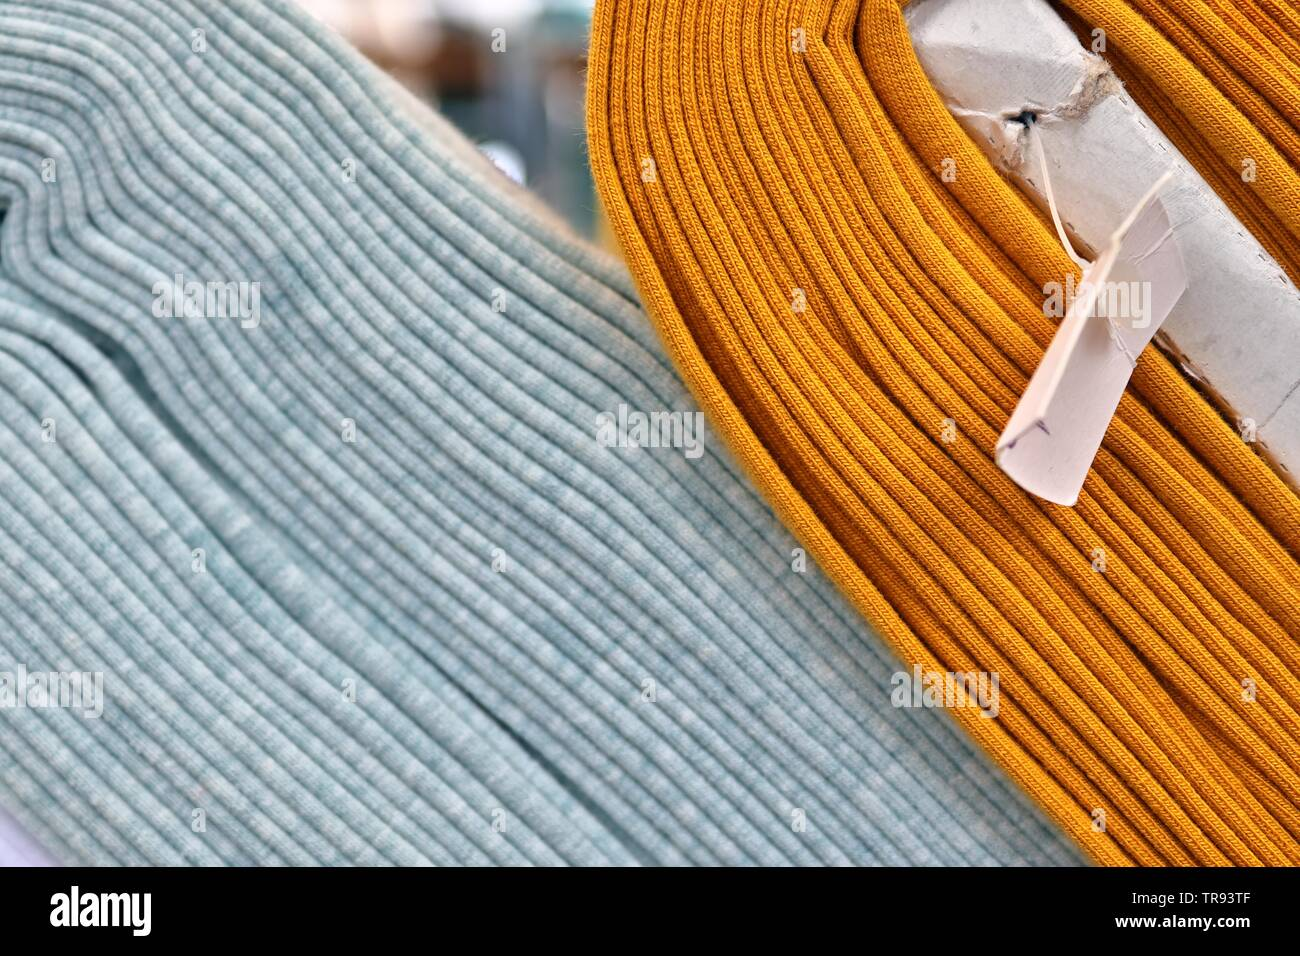 Close up surface of colorful fabrics cloth and textiles being folded and hang up in high resolution - Stock Image